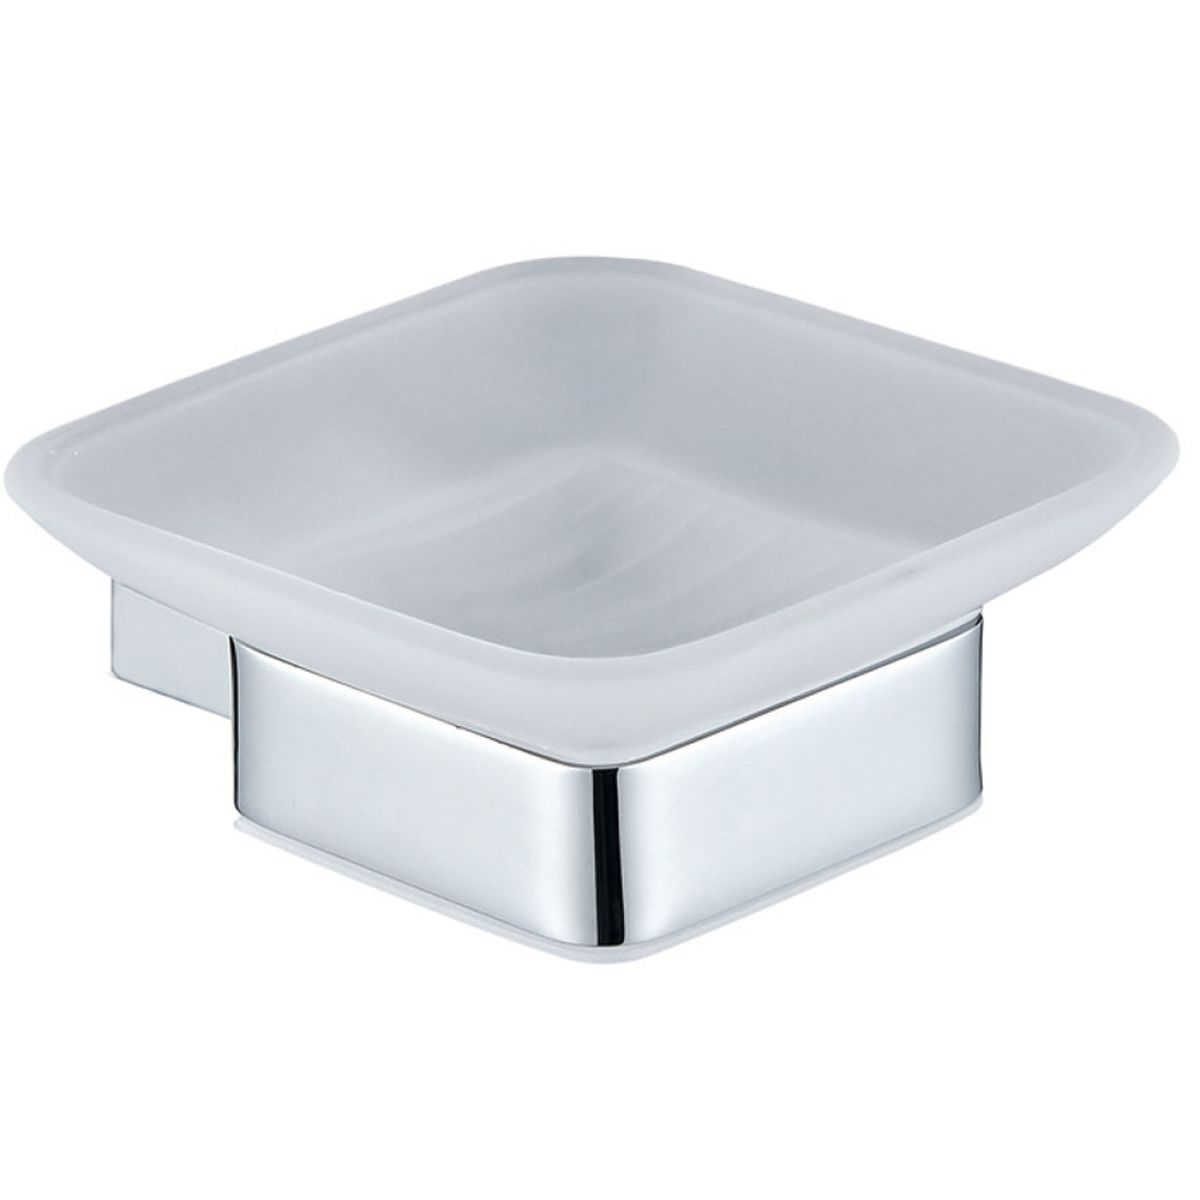 RAK Moon Square Wall Mounted Soap Dish